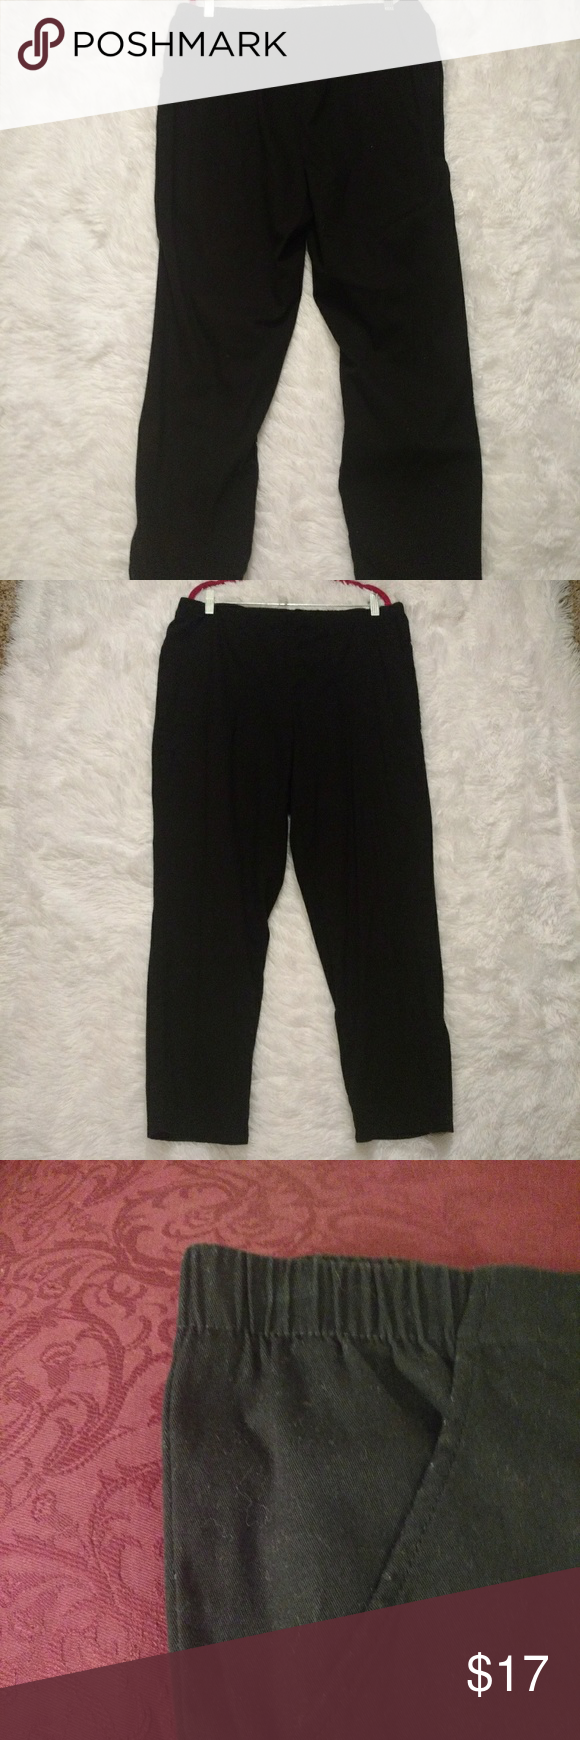 90c02fa4db3a4 Just My Size 2-Pocket Flat-front Black Pants SZ 2X This is a pair of 2-pocket  flat-front dress pants with an elastic waist and comfort stretch.